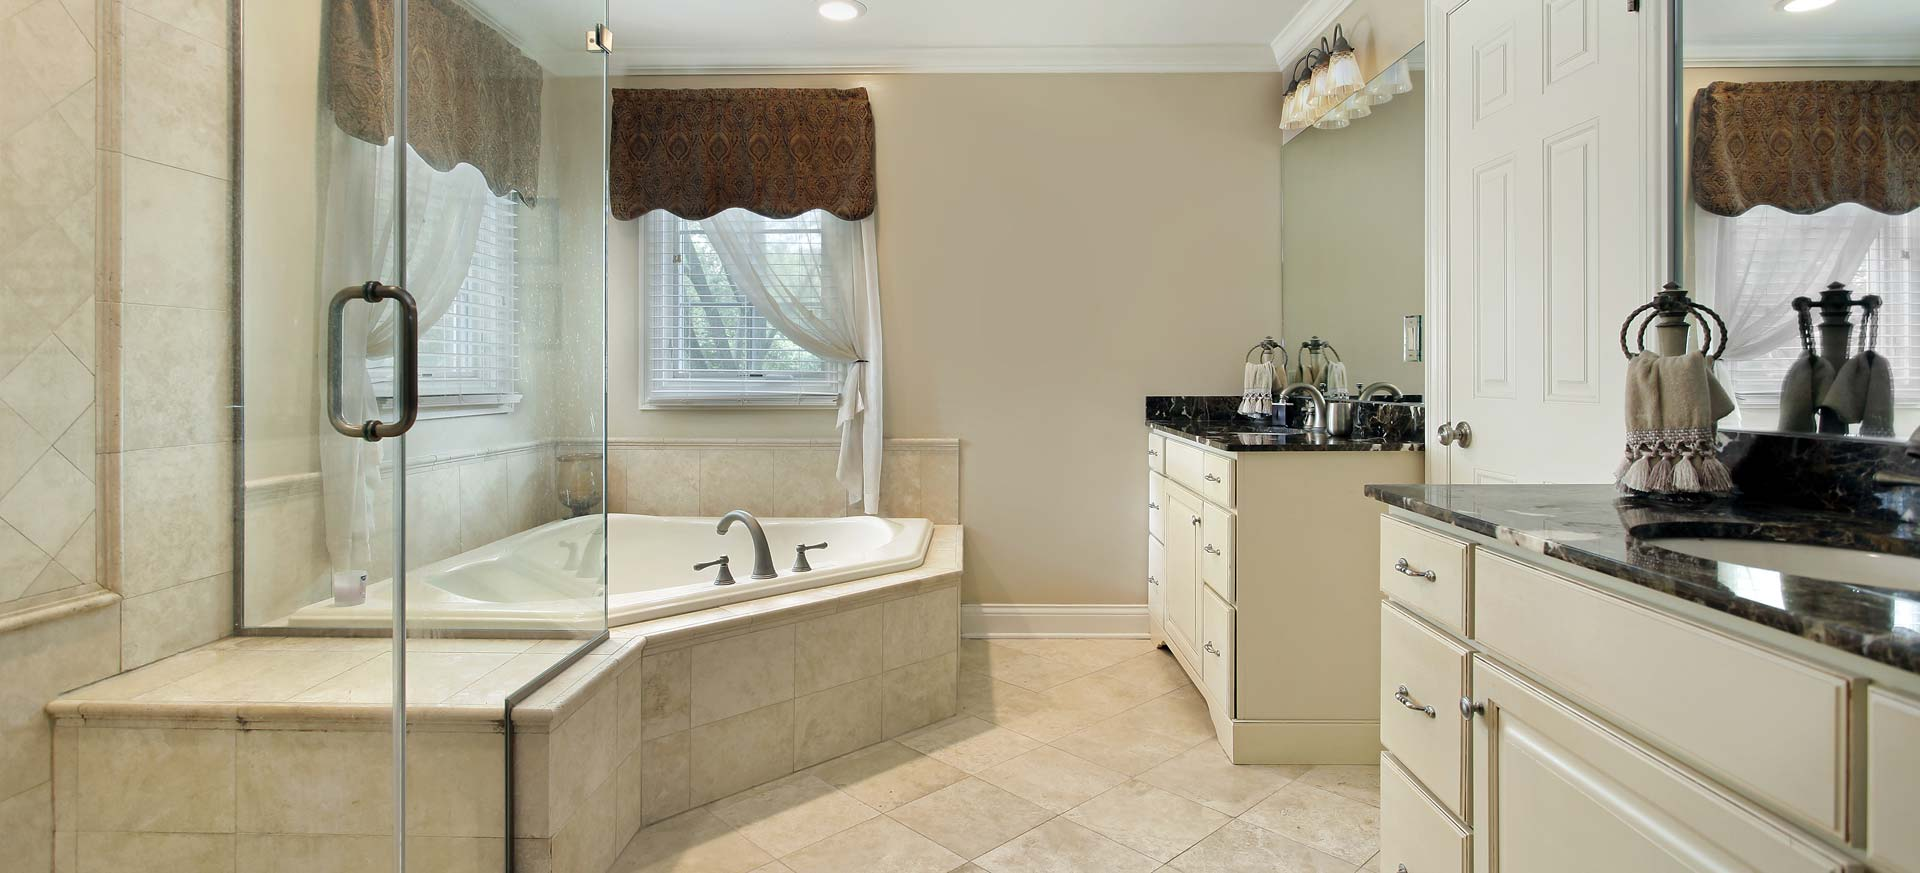 Quality One Contracting Remodeling Renovations Raleigh NC - Raleigh bathroom remodeling contractor